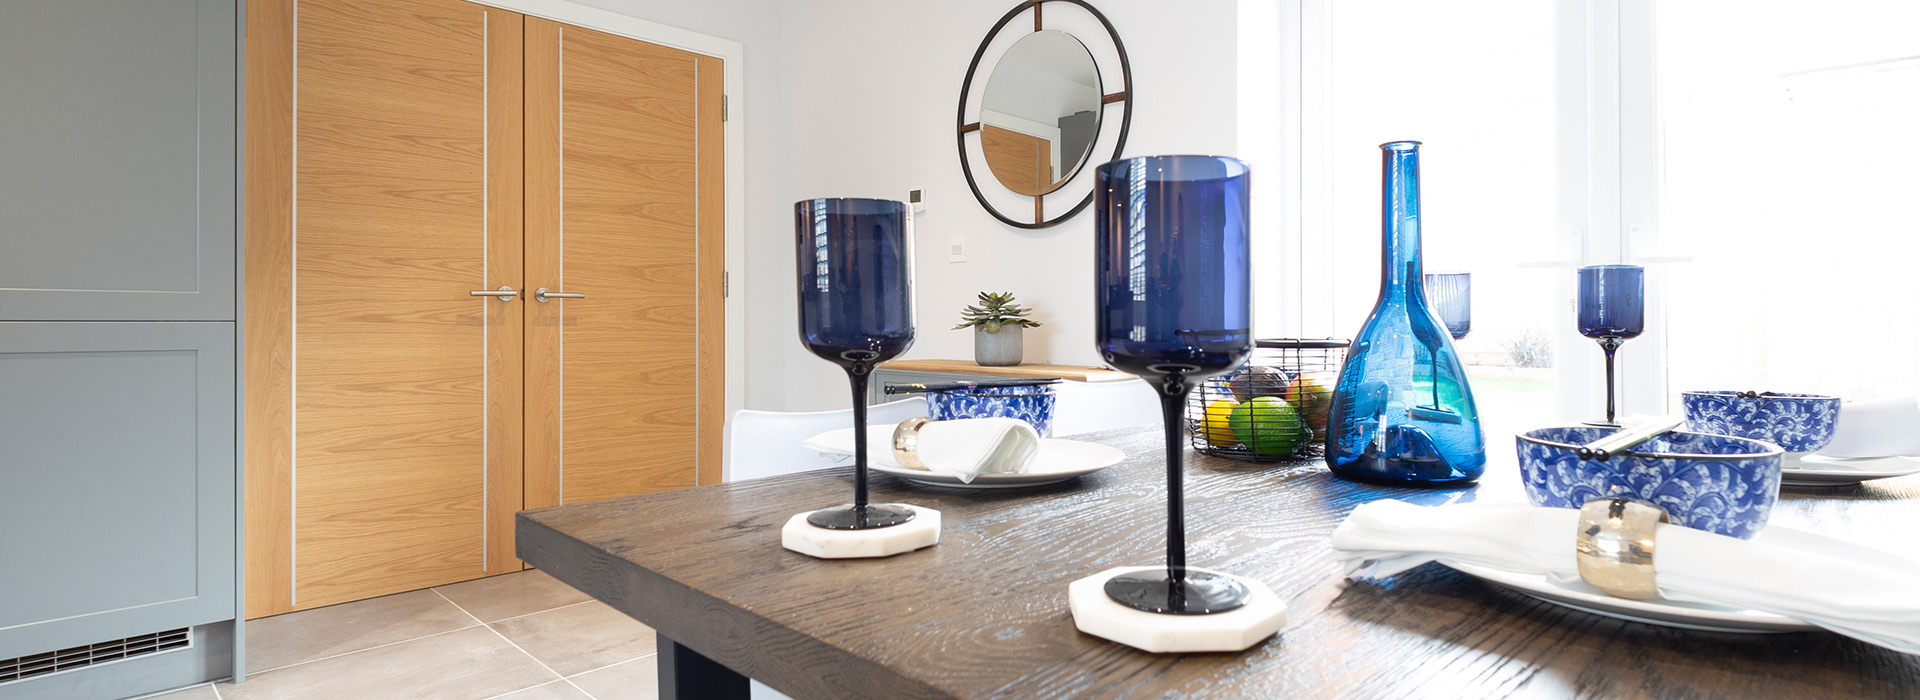 Blue glass dinnerware modern interior